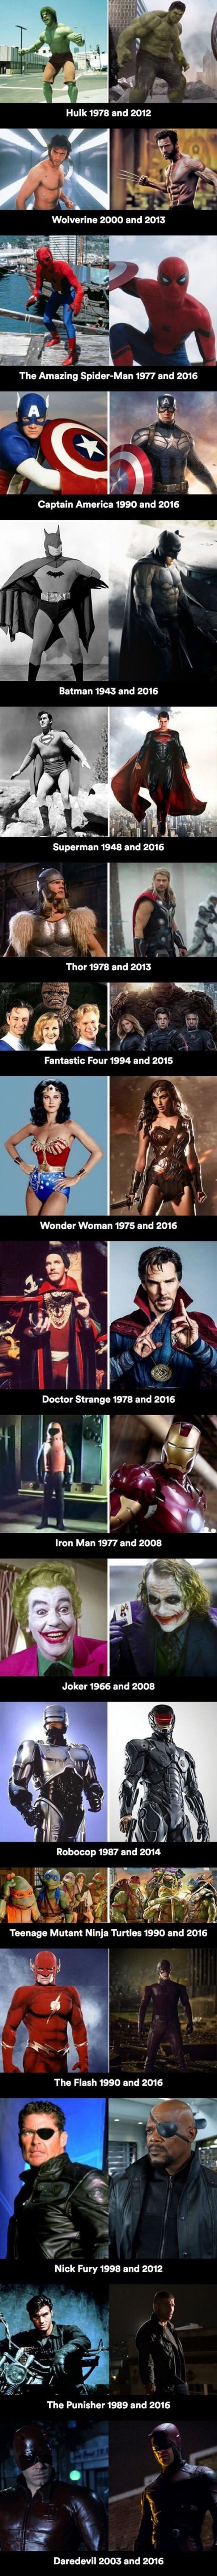 On screen superheros before and after